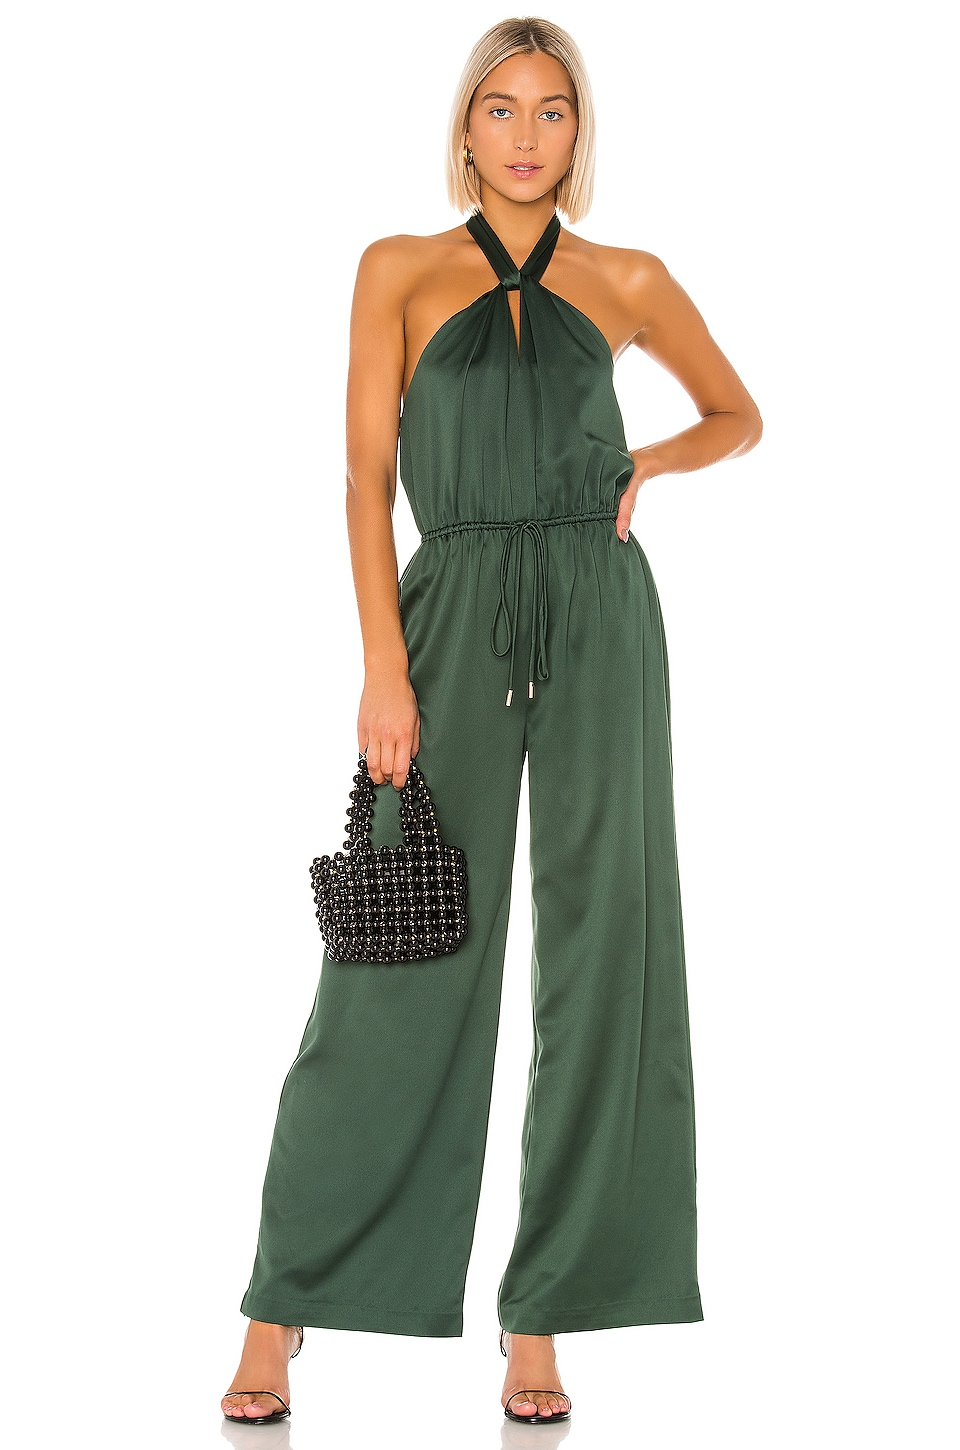 House of Harlow 1960 X REVOLVE Alana Jumpsuit in Emerald